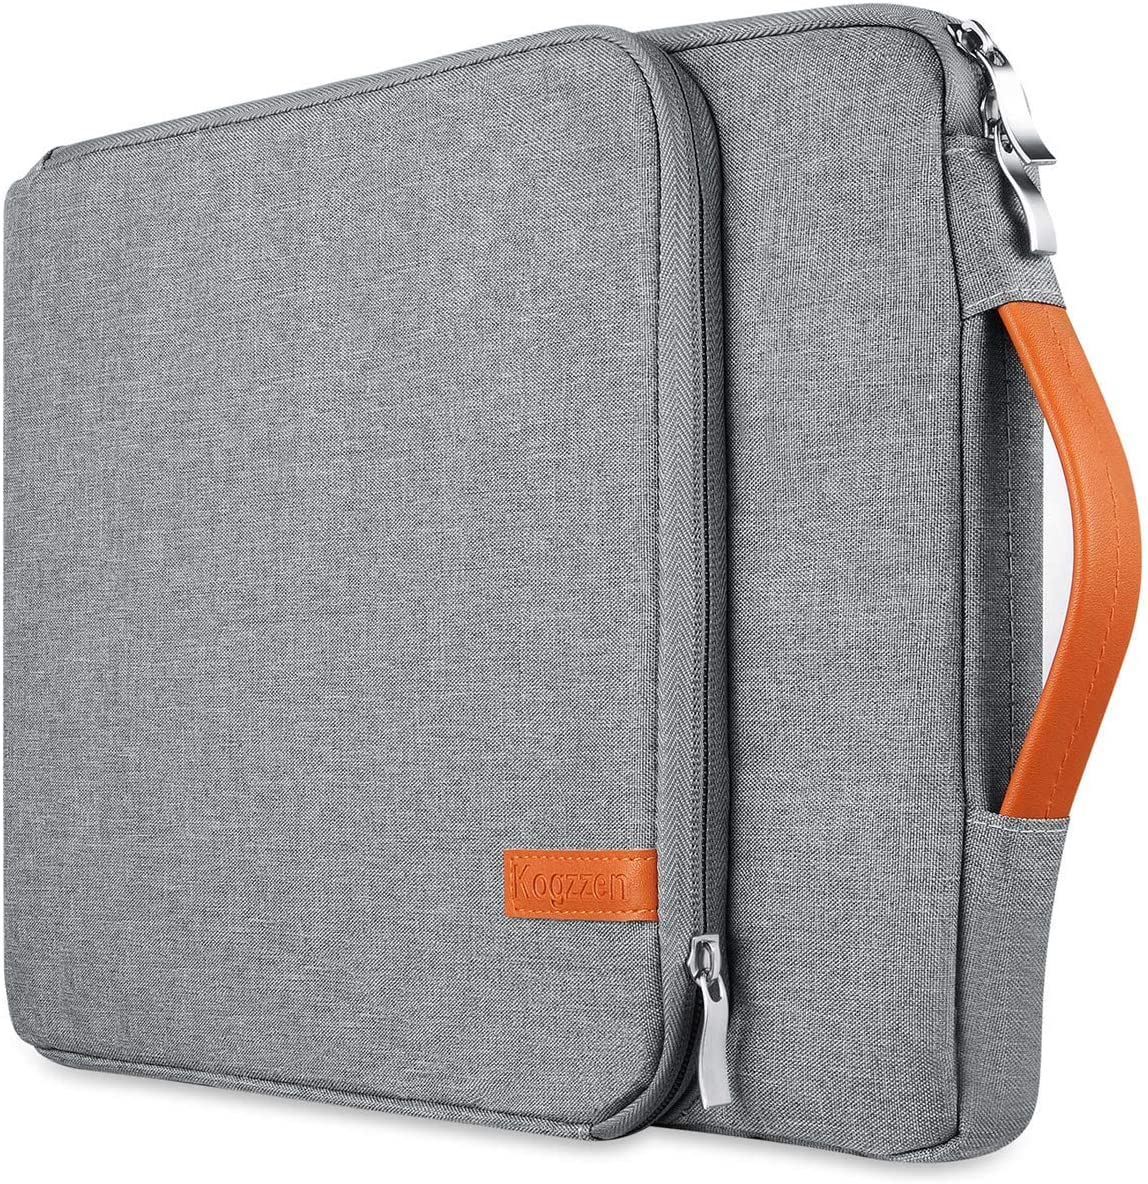 """Kogzzen 11 11.6 12 Inch Laptop Sleeve Shockproof Notebook Case Bag Compatible with MacBook 12""""/ MacBook Air 11.6""""/ Surface Pro, Chromebook Dell HP Samsung Asus Acer - Gray"""